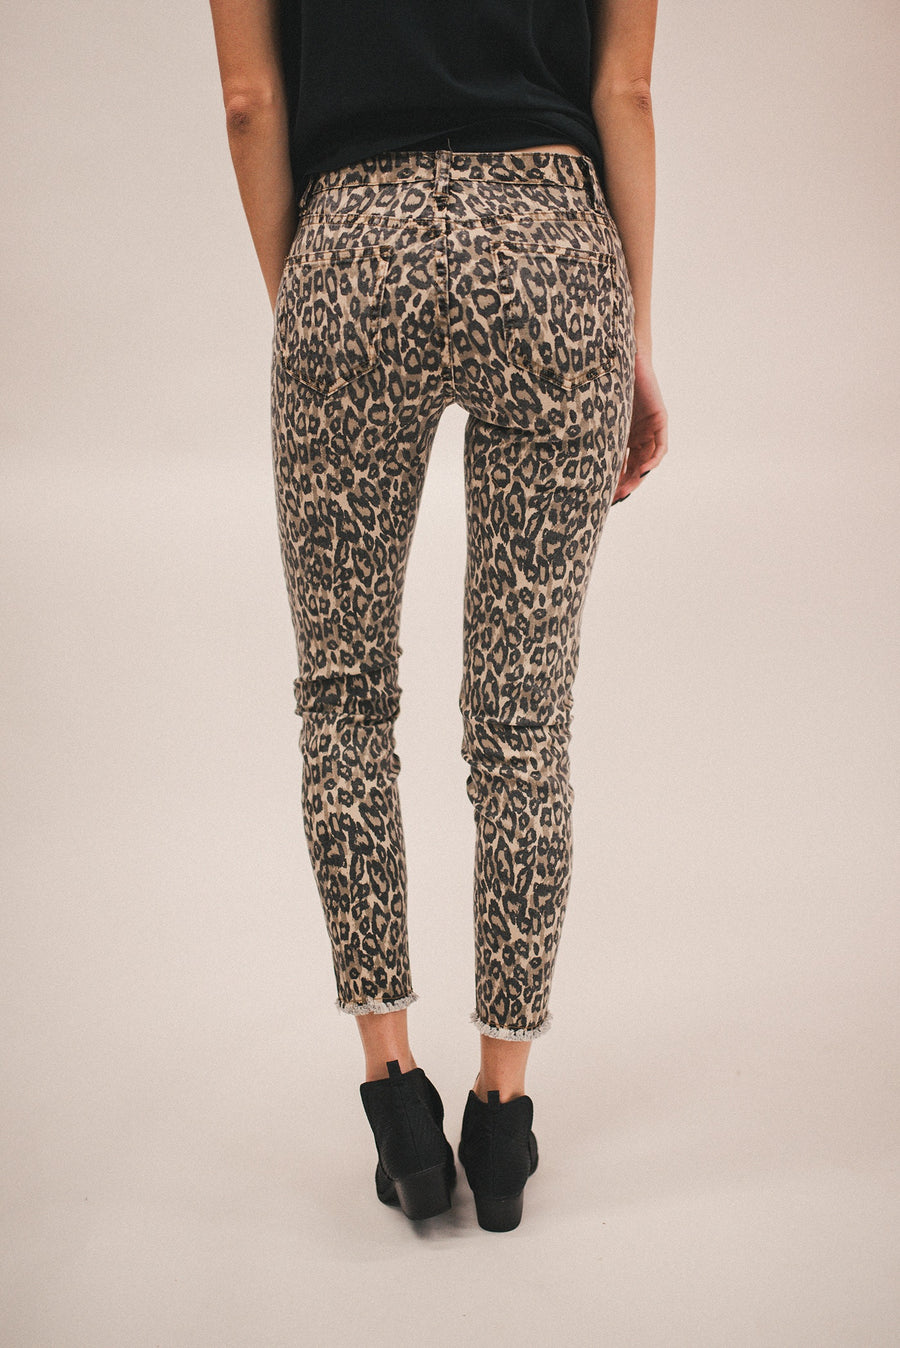 FEELING FIERCE LEOPARD PRINTED JEANS